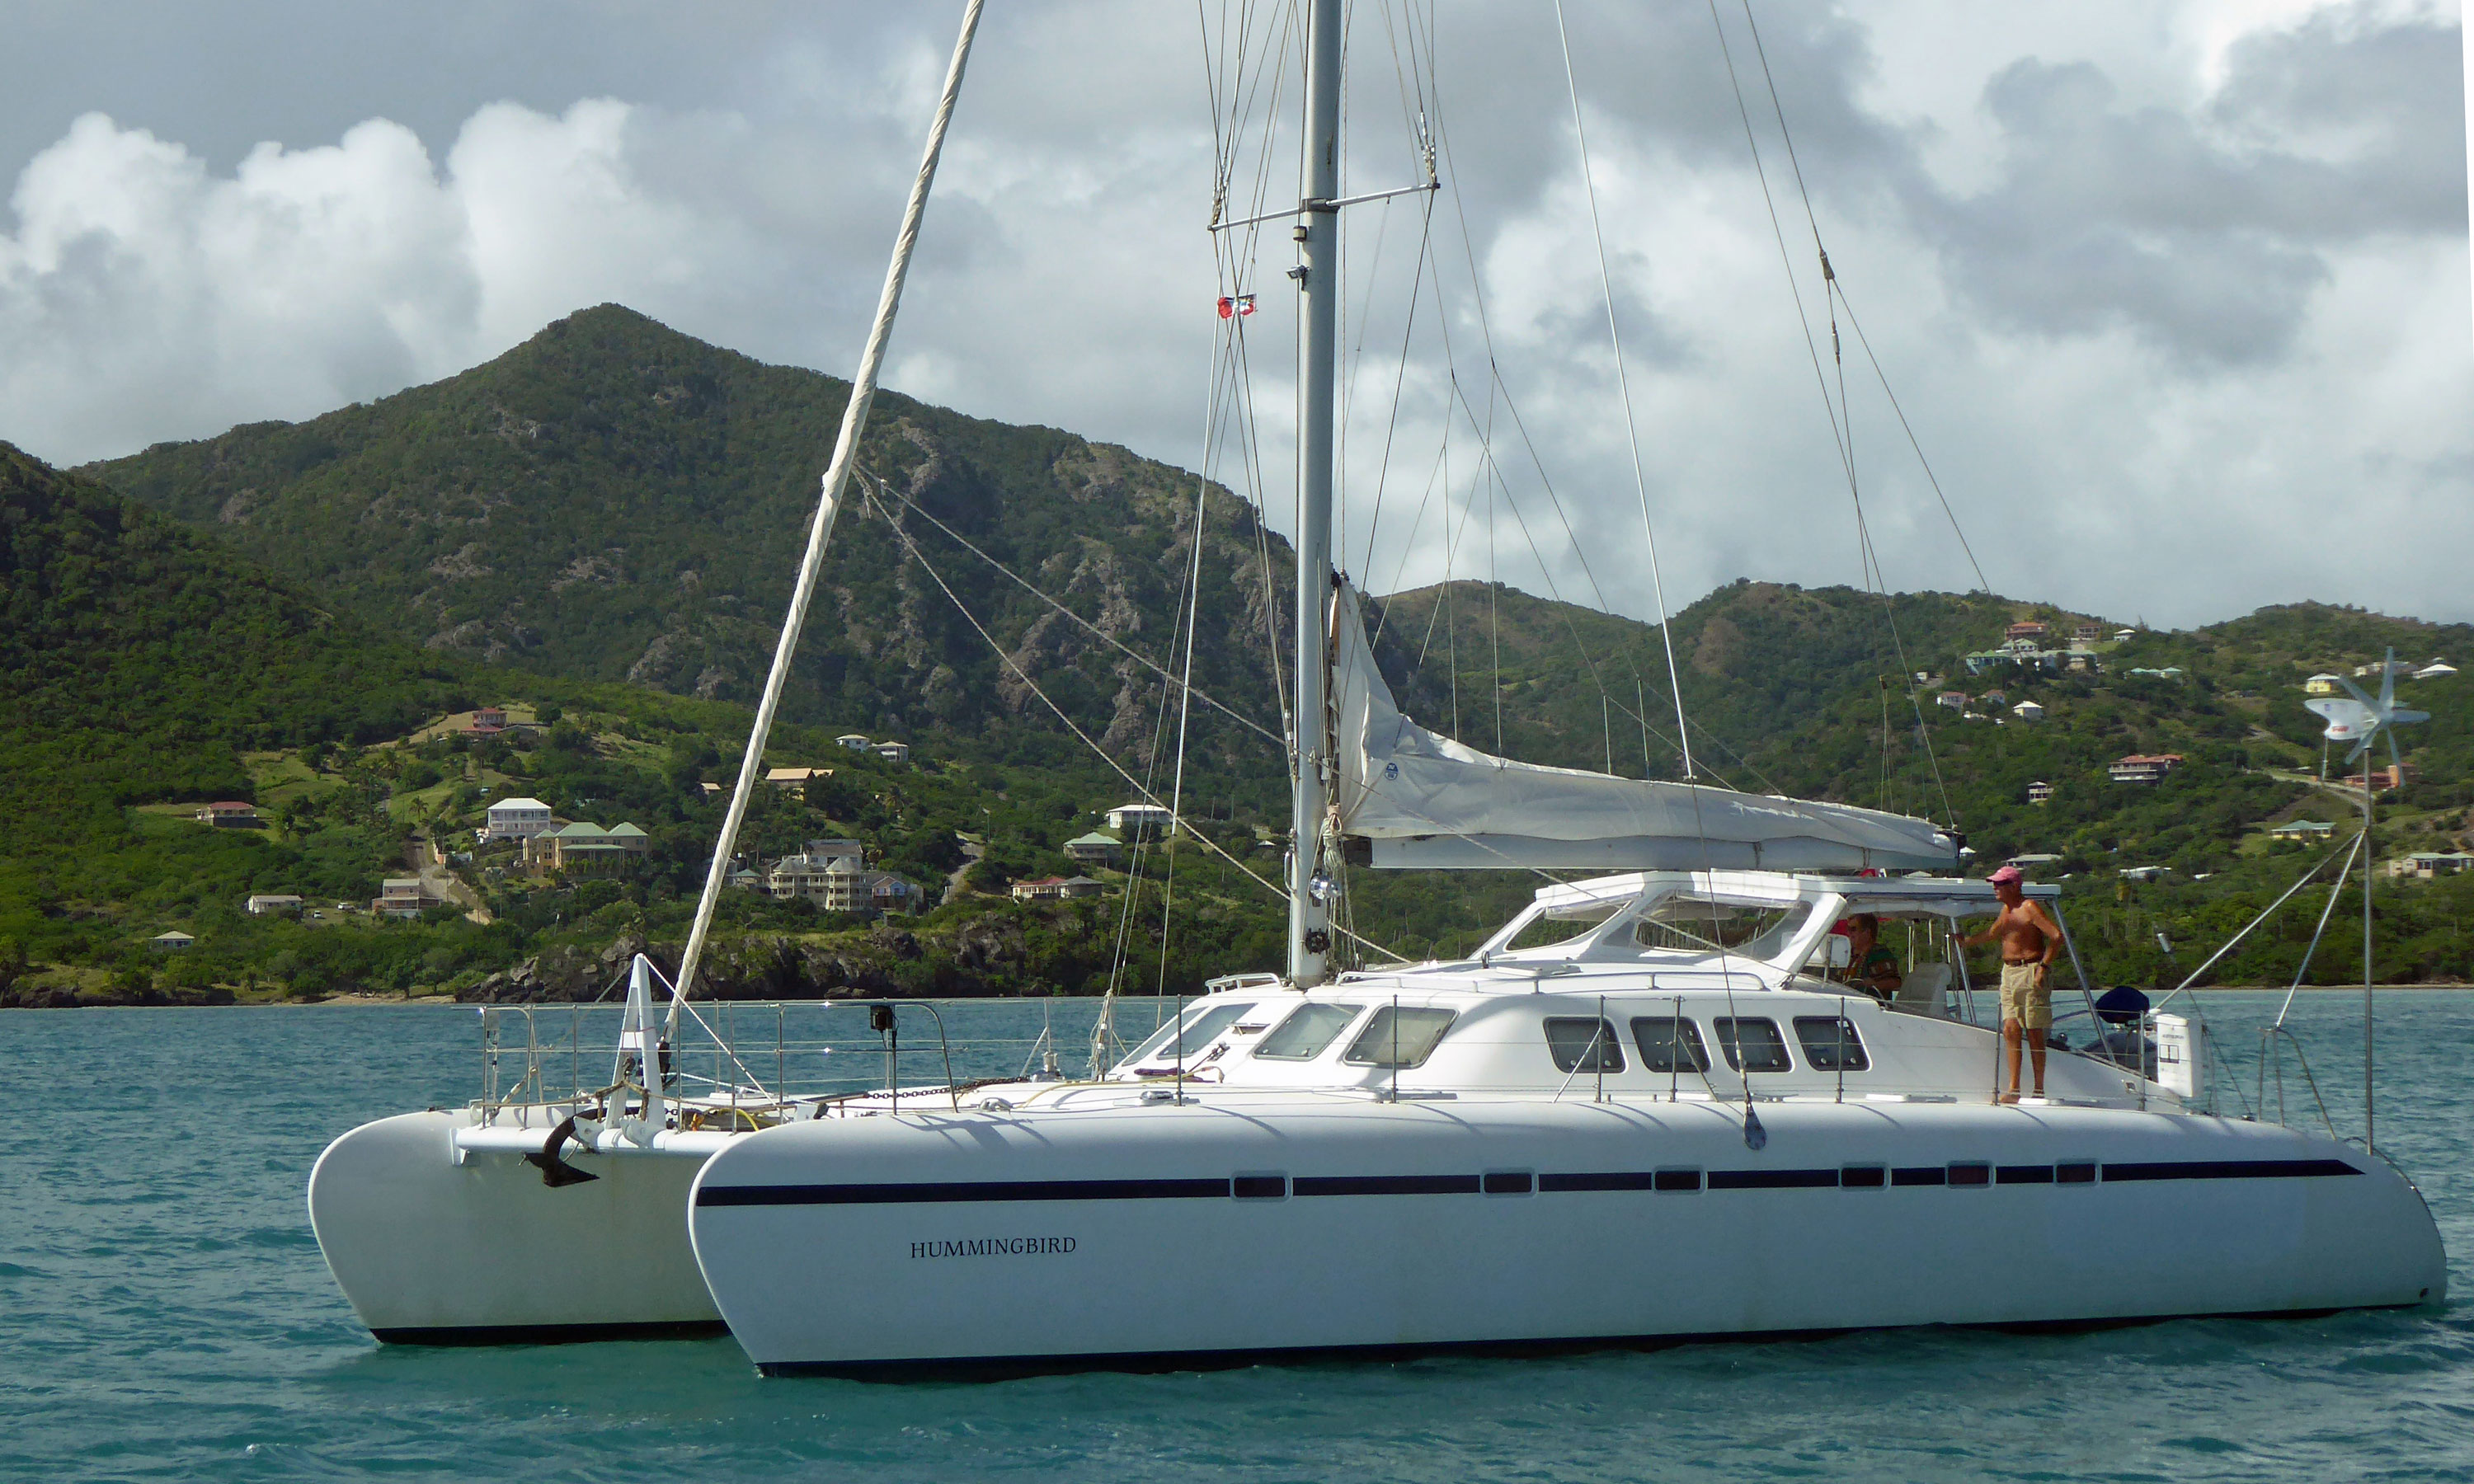 Hummingbird of Itchenor, a 50 foot luxury catamaran